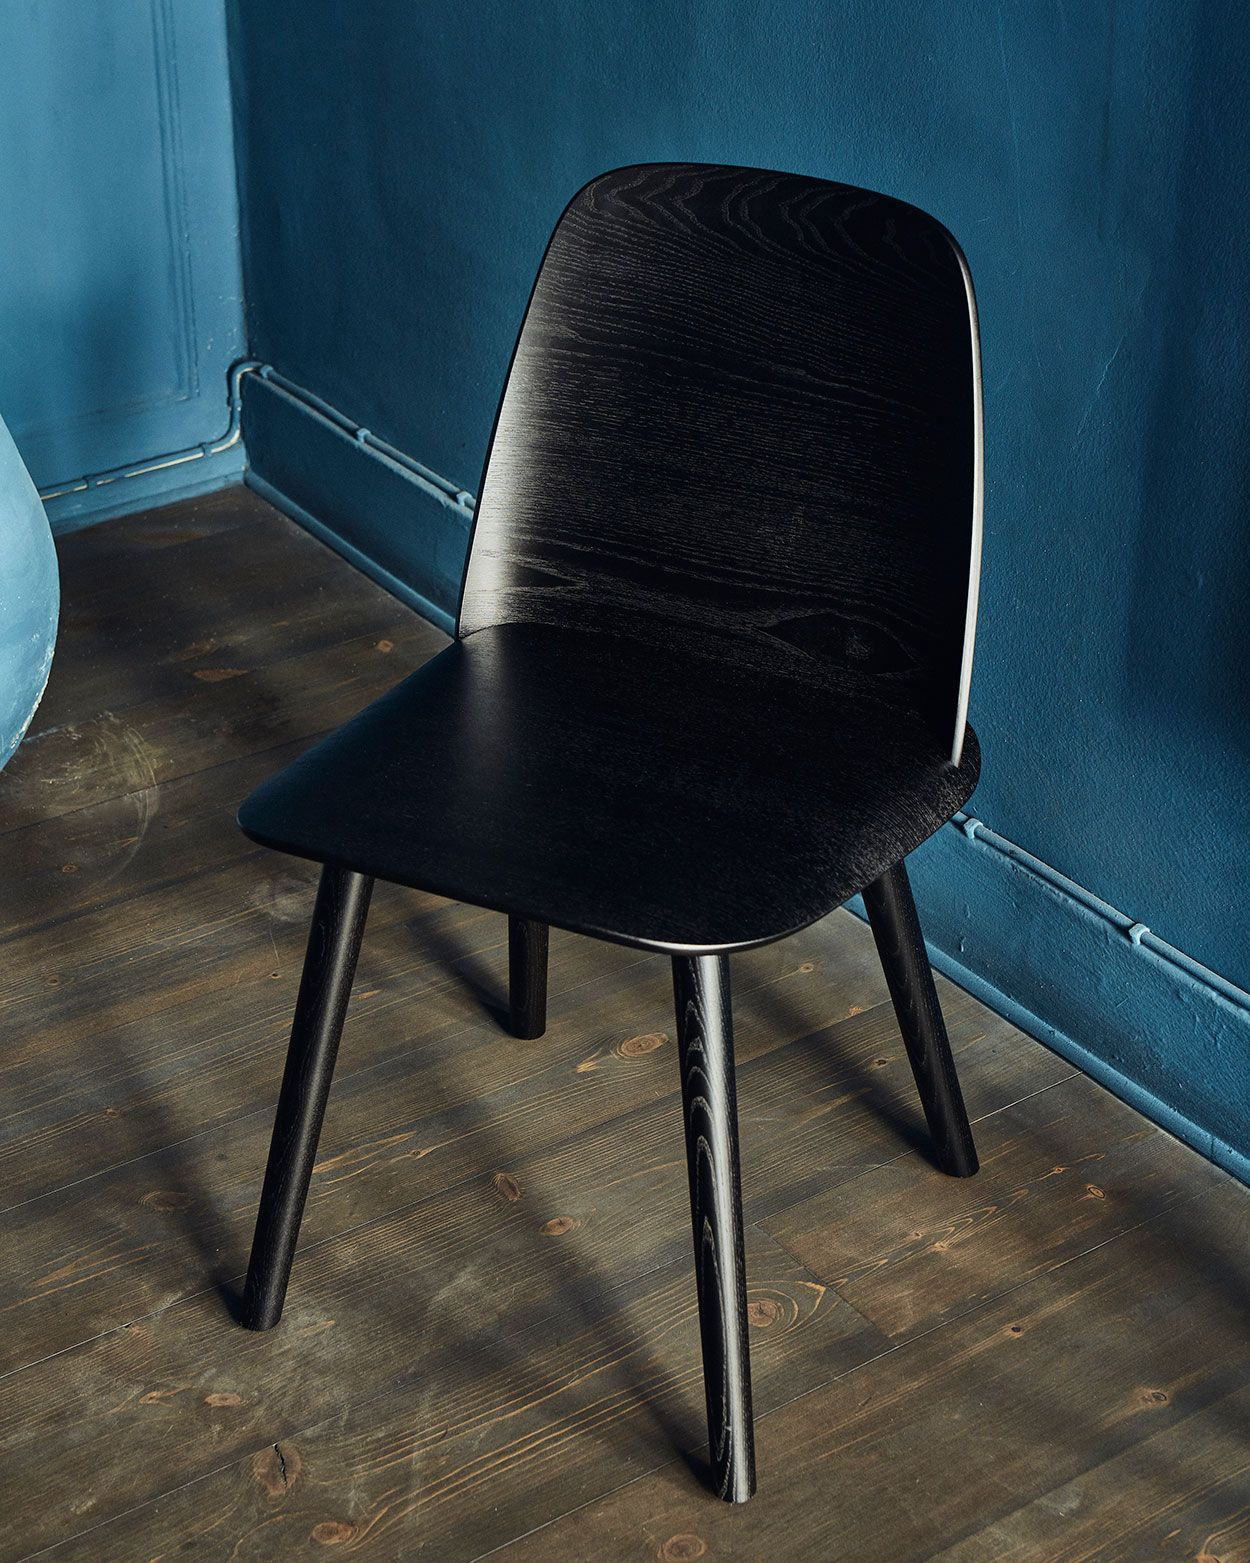 Scandinavian Chair Scandinavian Chair Inspiration From Muuto The Nerd Chair Seen